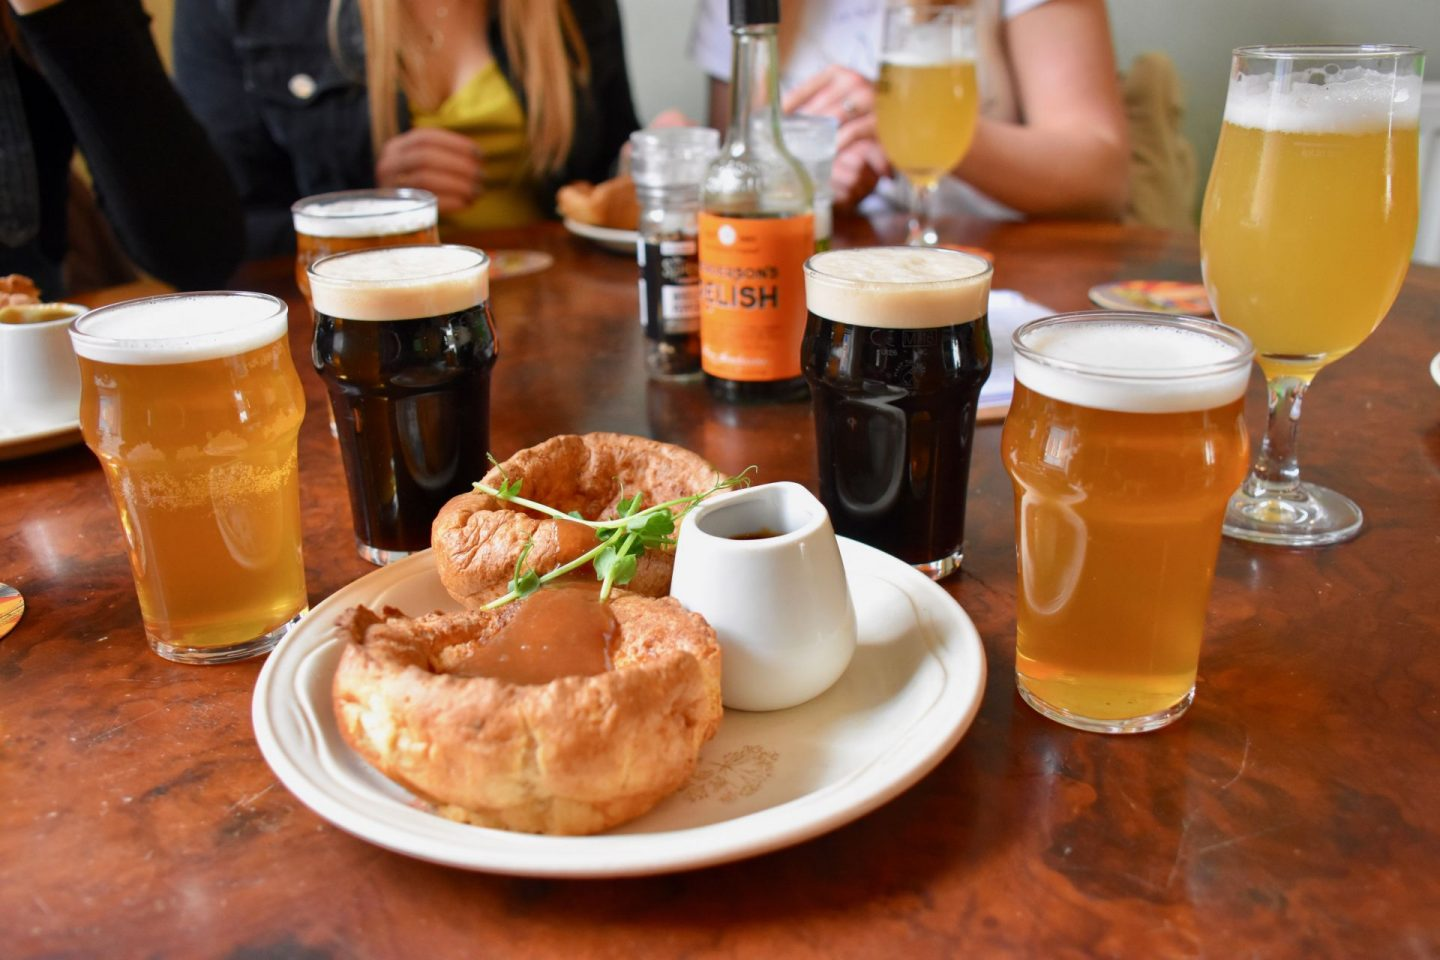 Coffee Shops Leeds - a plate of Yorkshire Puddings surrounded by local beers on a wooden table at Wapentake in Leeds